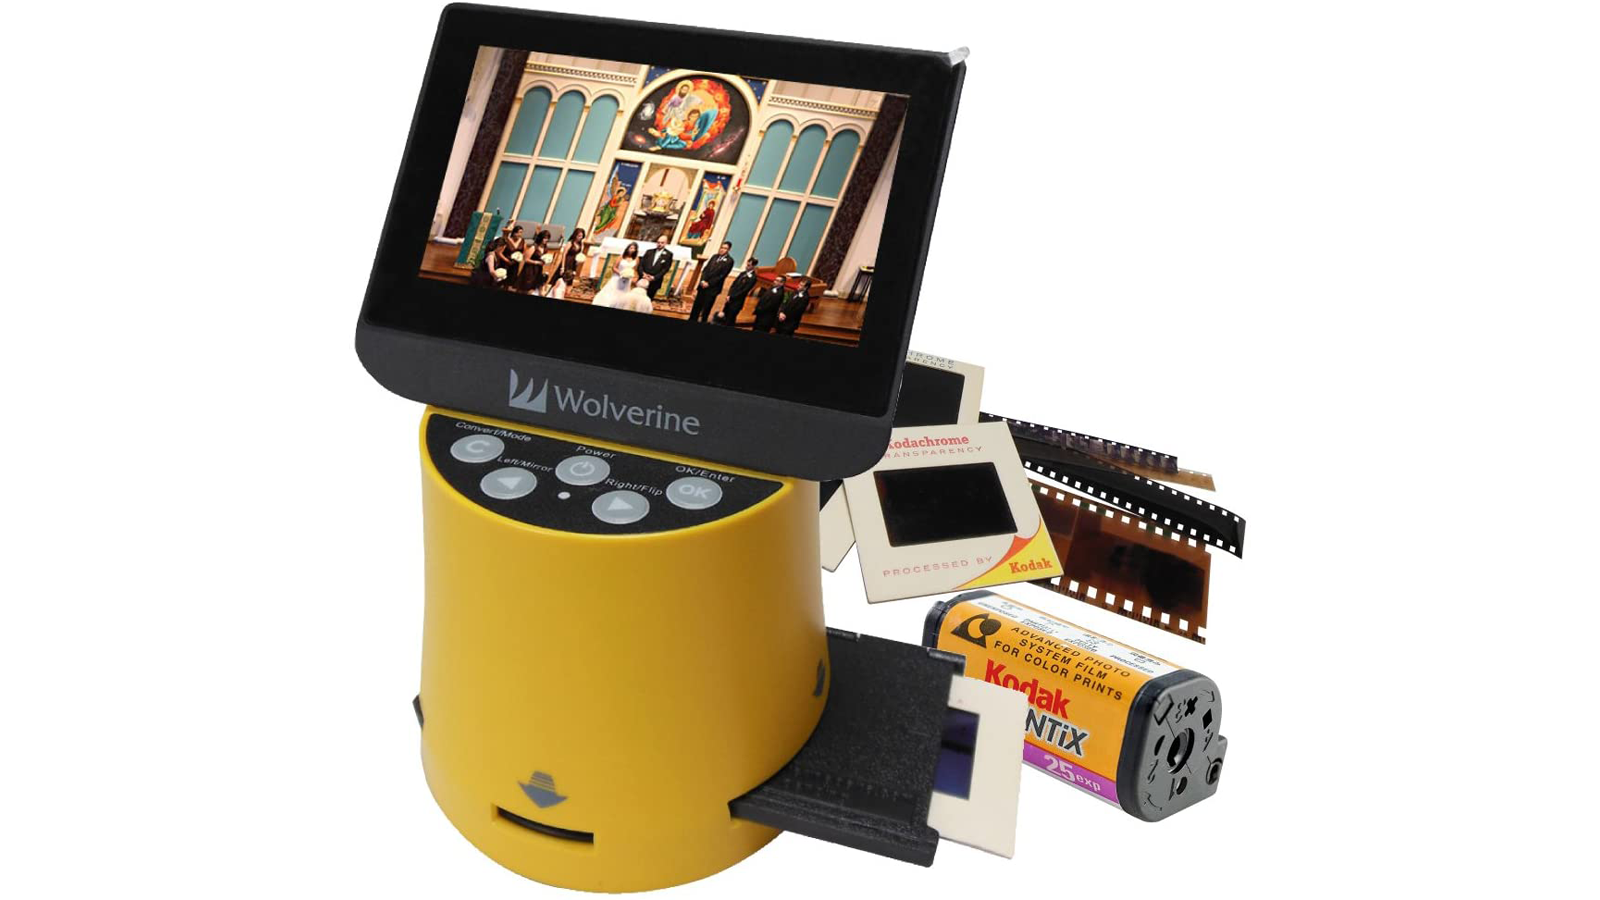 Wolverine Titan 8-in-1 slide to digital image converter in yellow